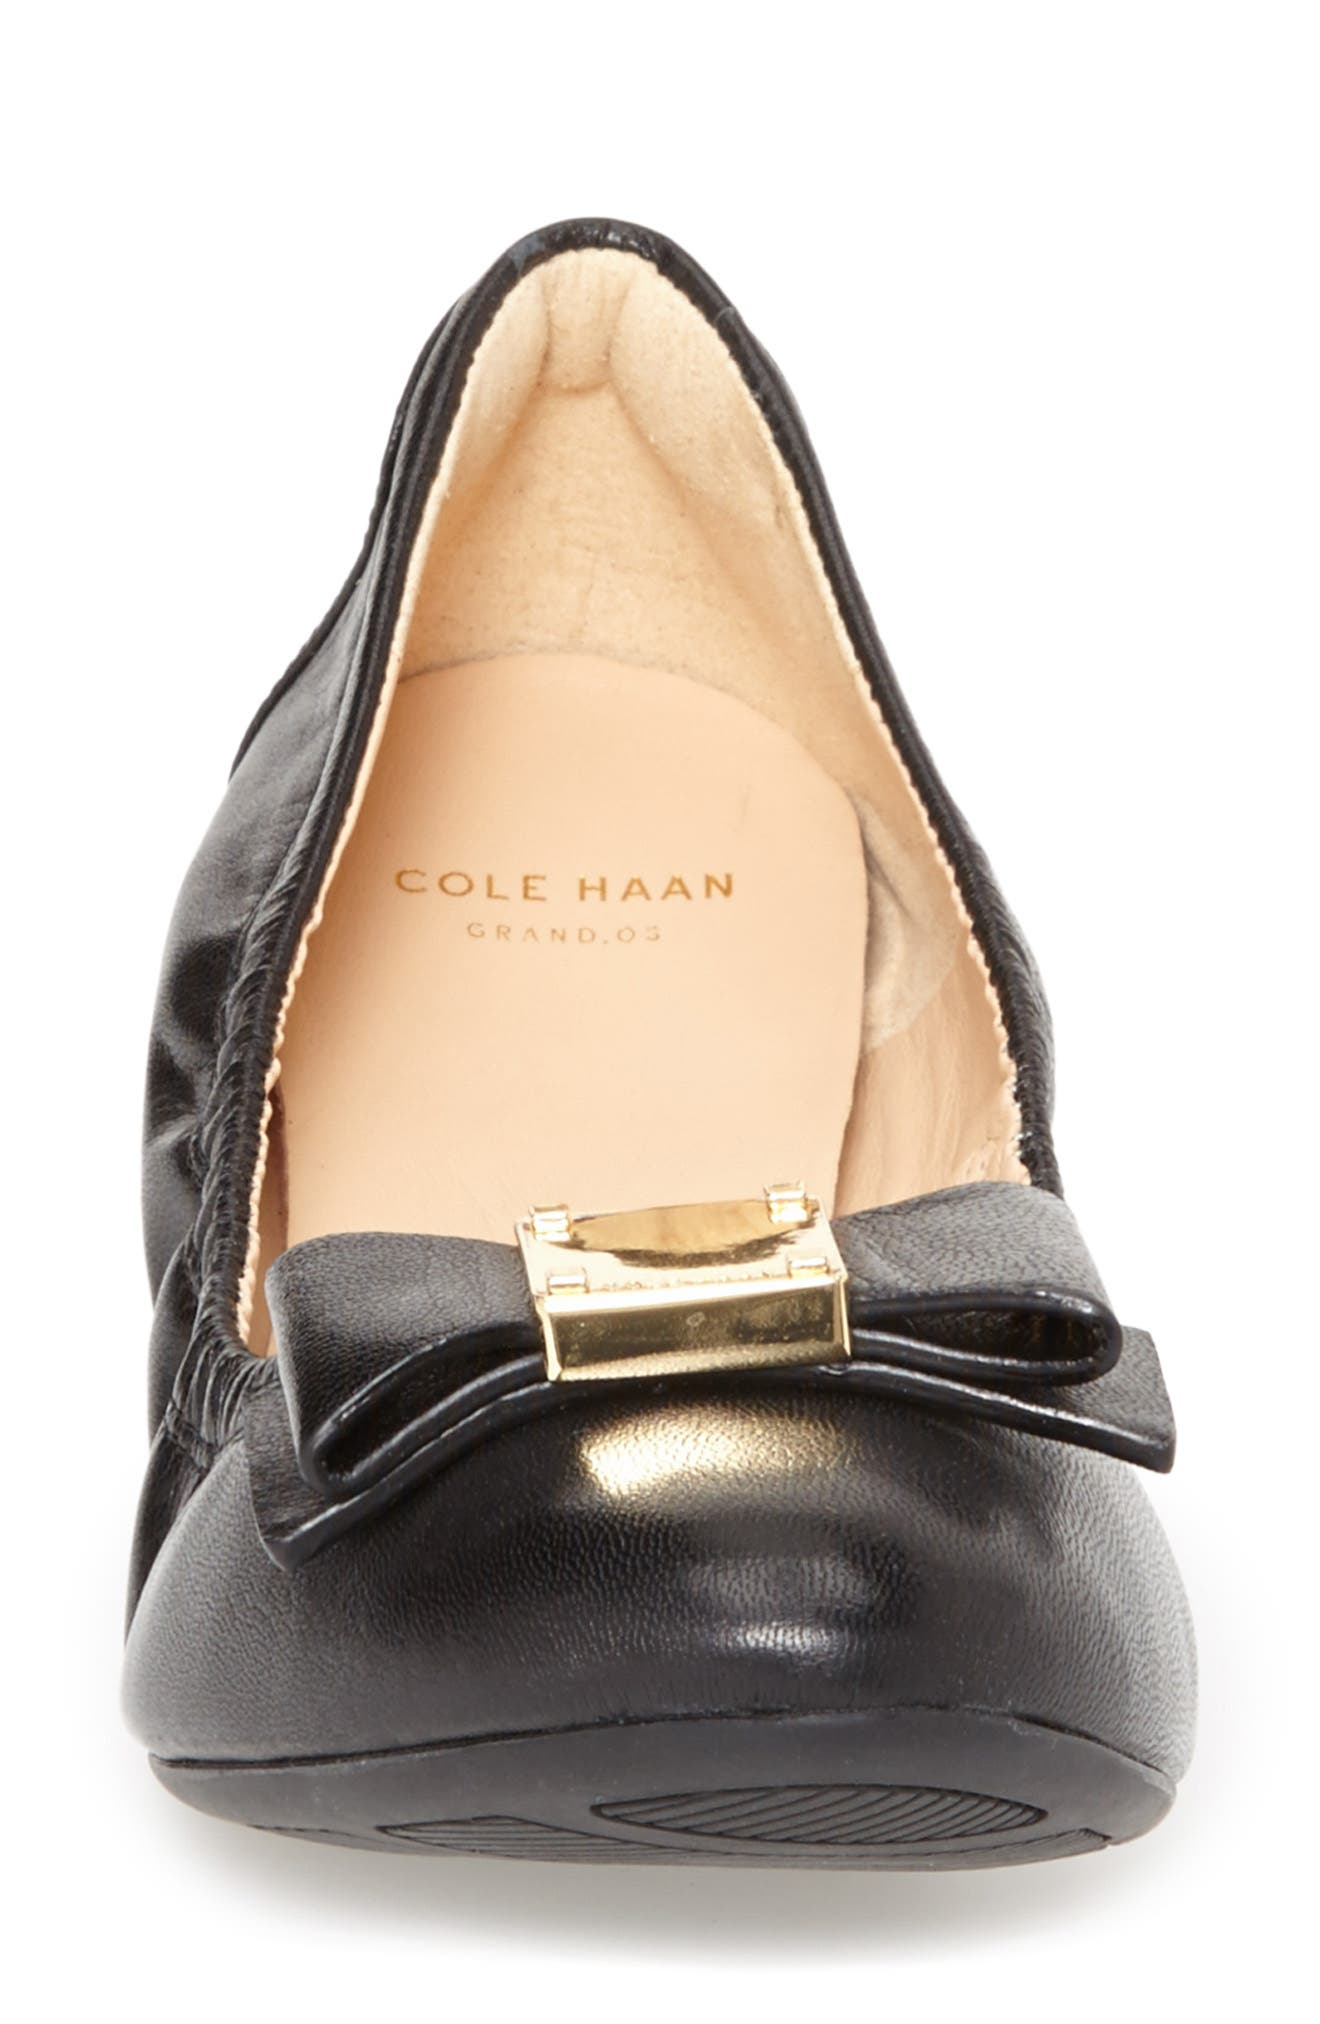 COLE HAAN, 'Tali' Bow Ballet Flat, Alternate thumbnail 3, color, BLACK